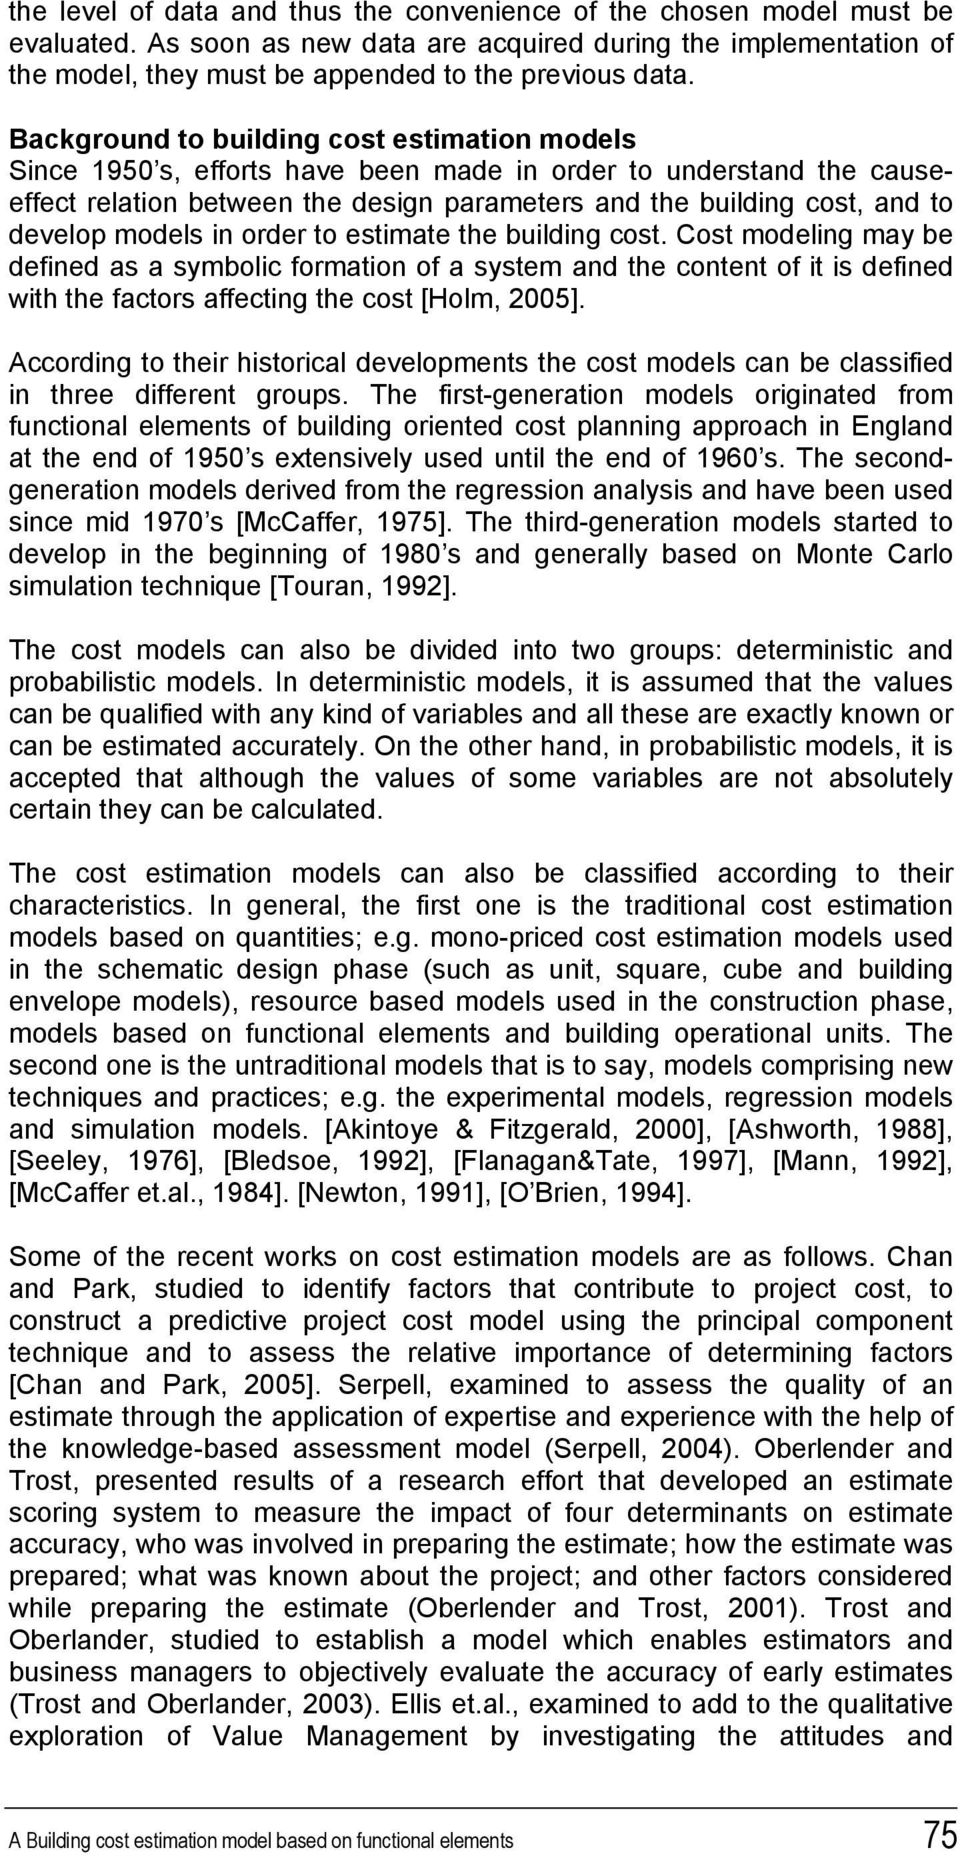 models in order to estimate the building cost. Cost modeling may be defined as a symbolic formation of a system and the content of it is defined with the factors affecting the cost [Holm, 2005].